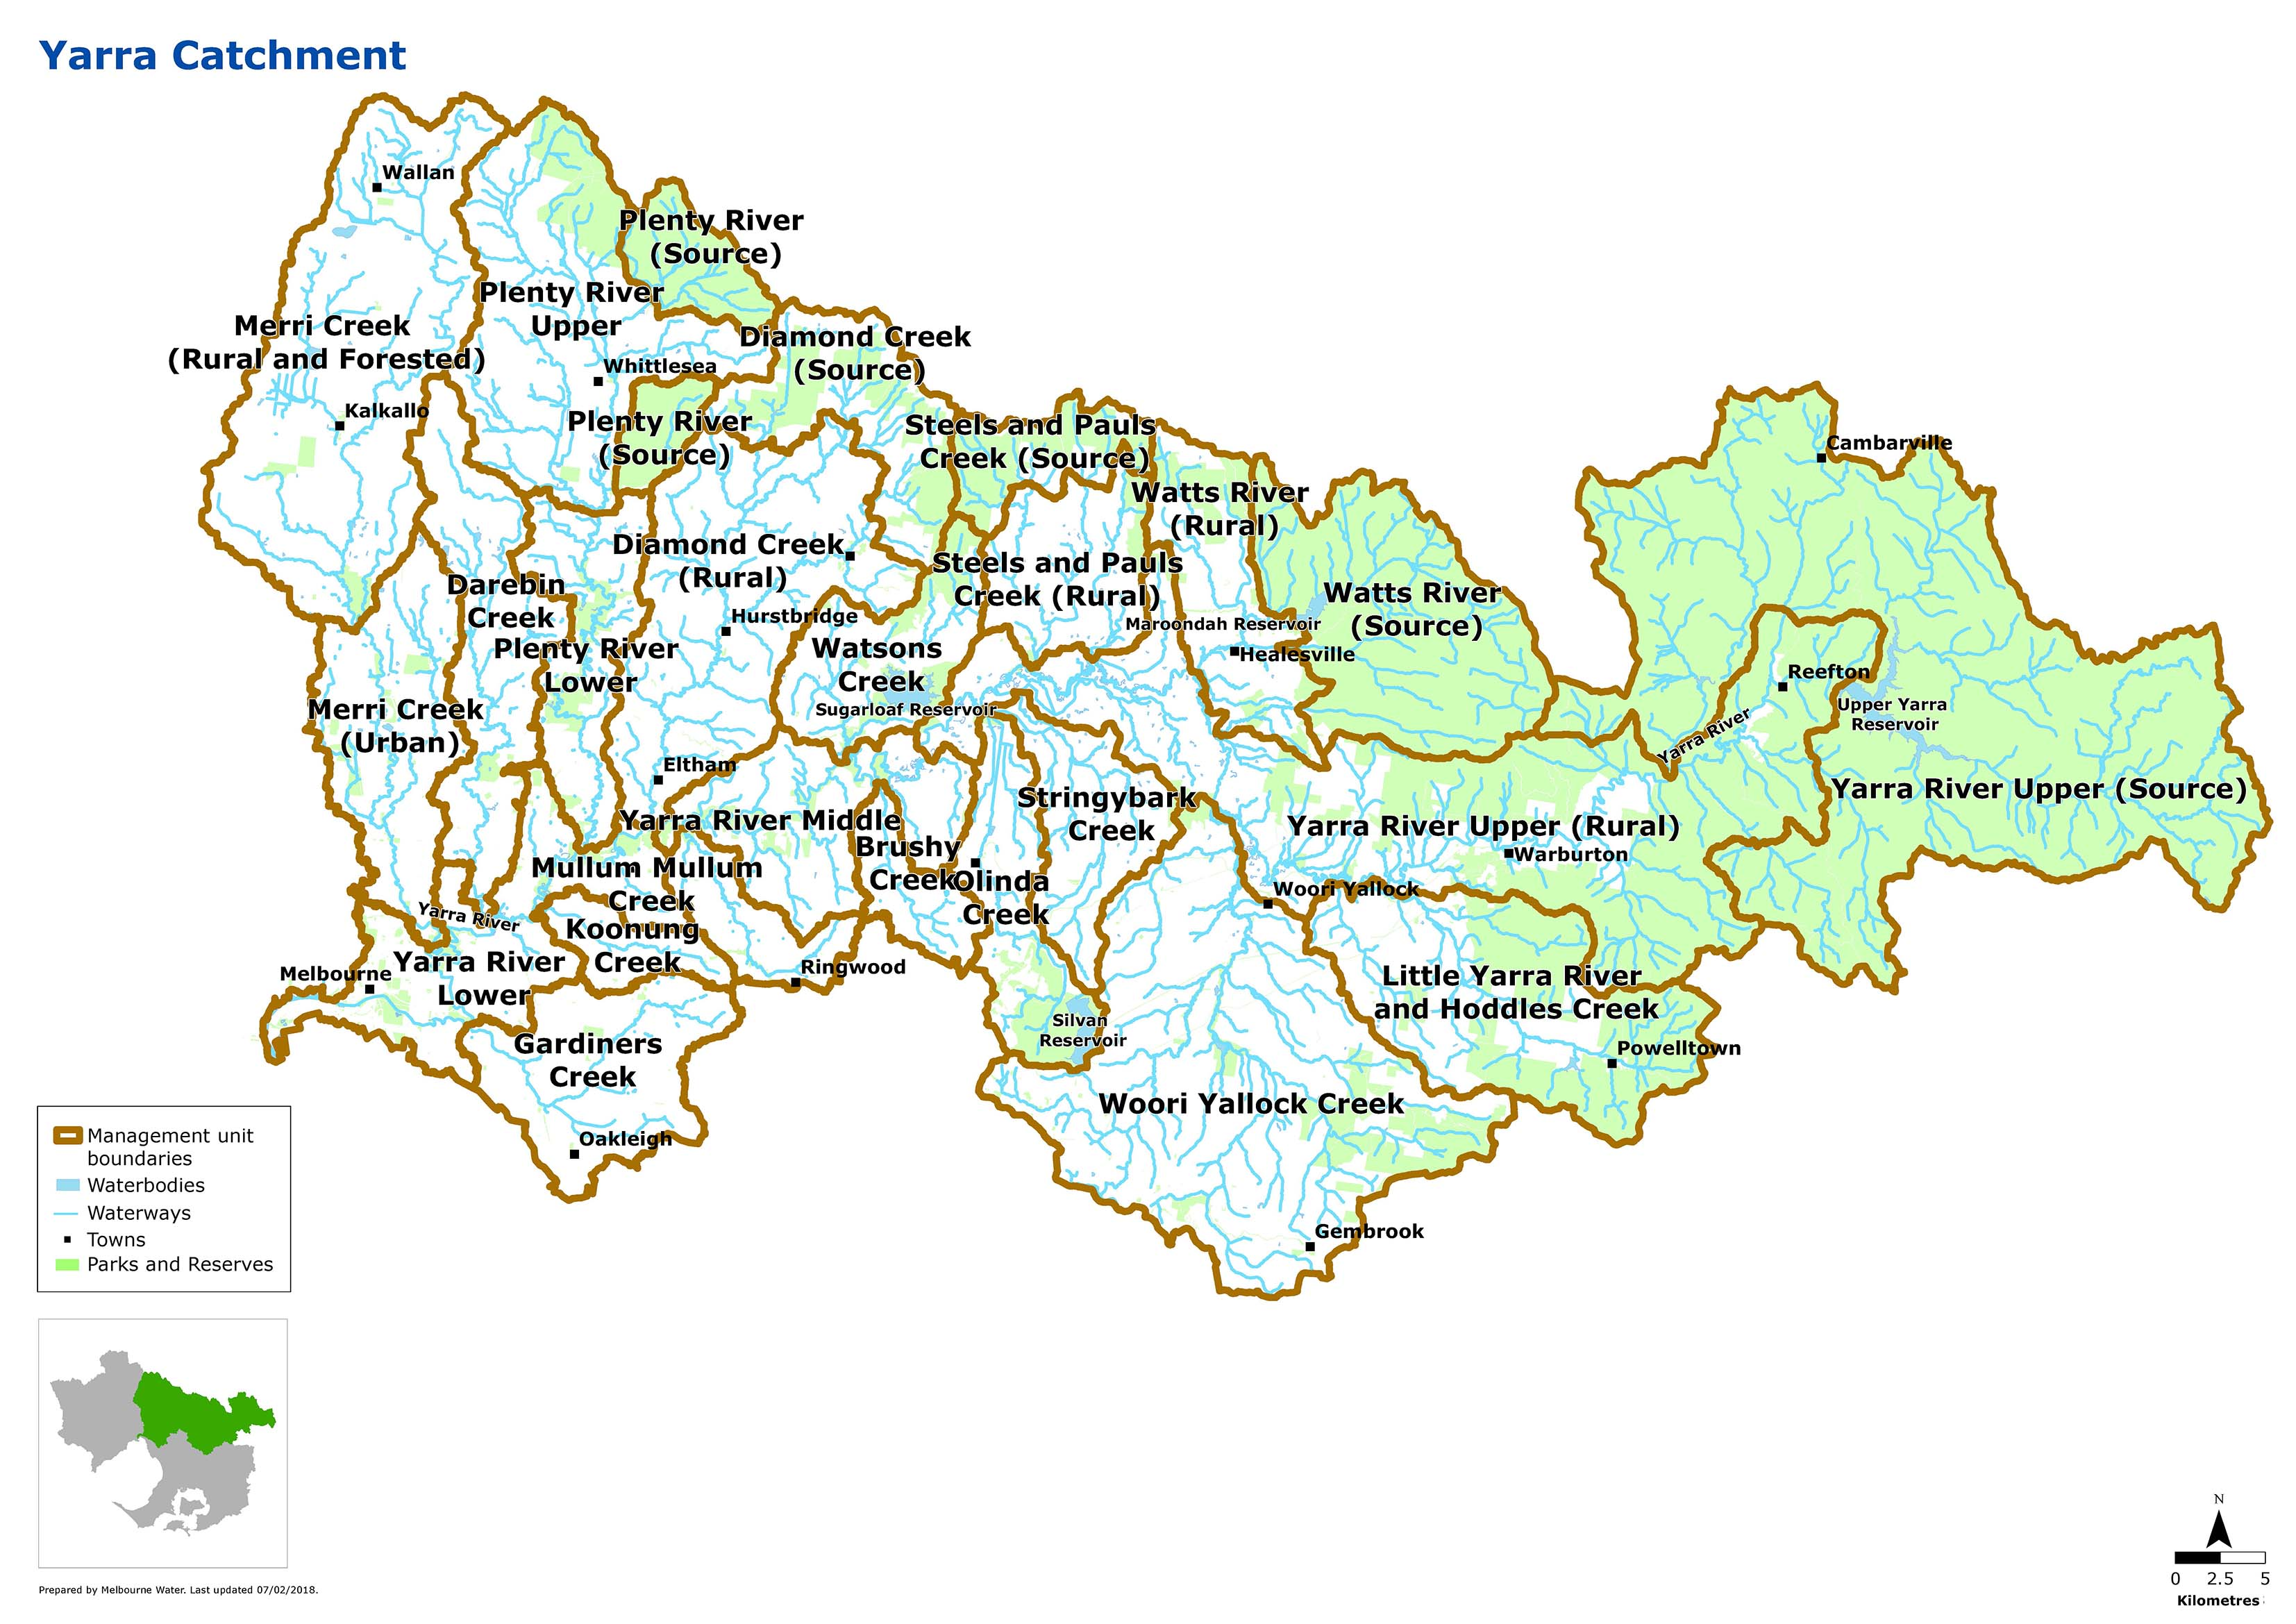 Map of Yarra Catchment